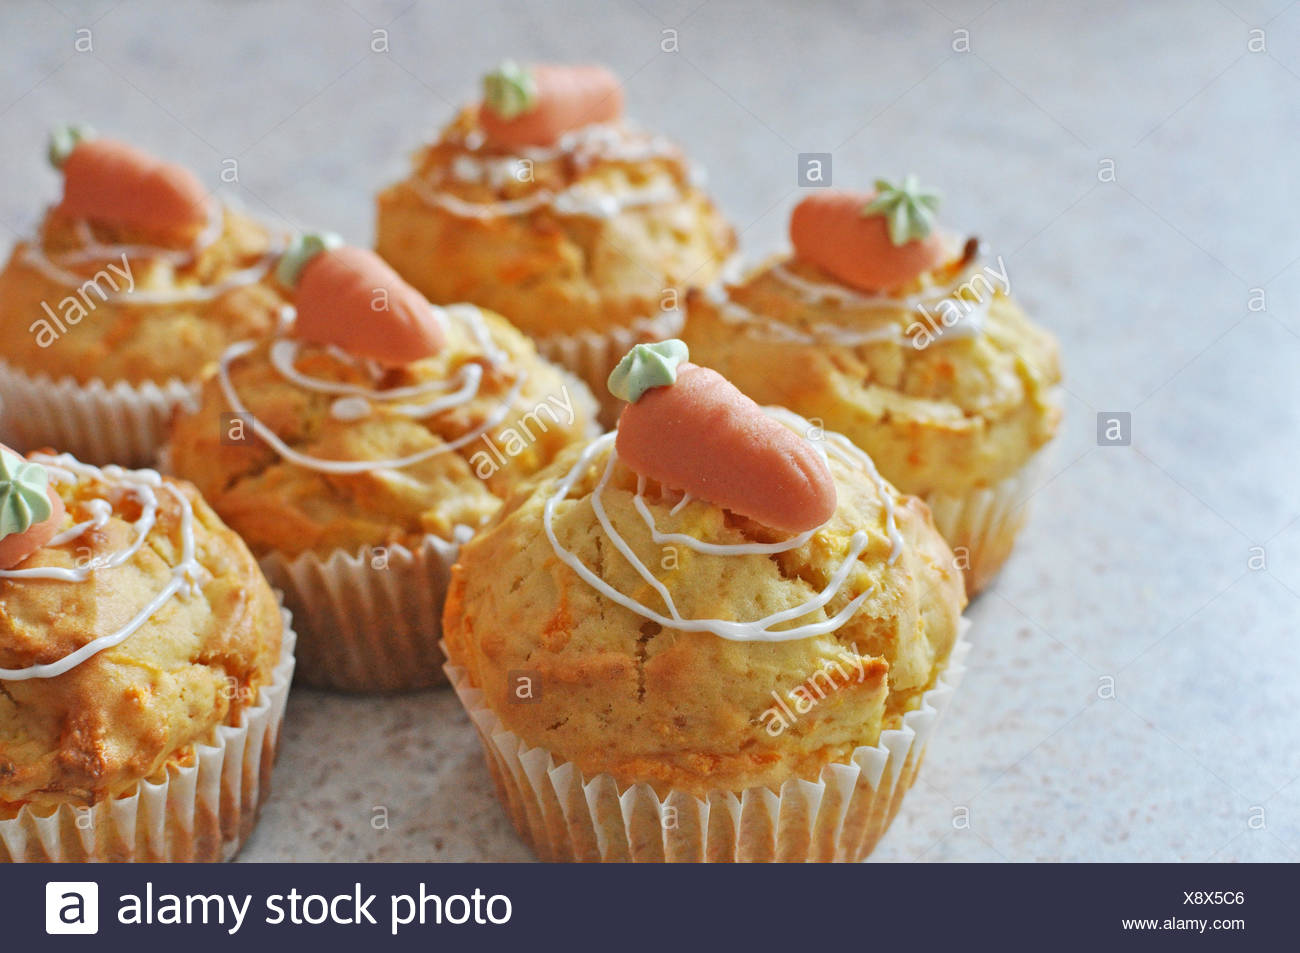 carrot muffins - Stock Image